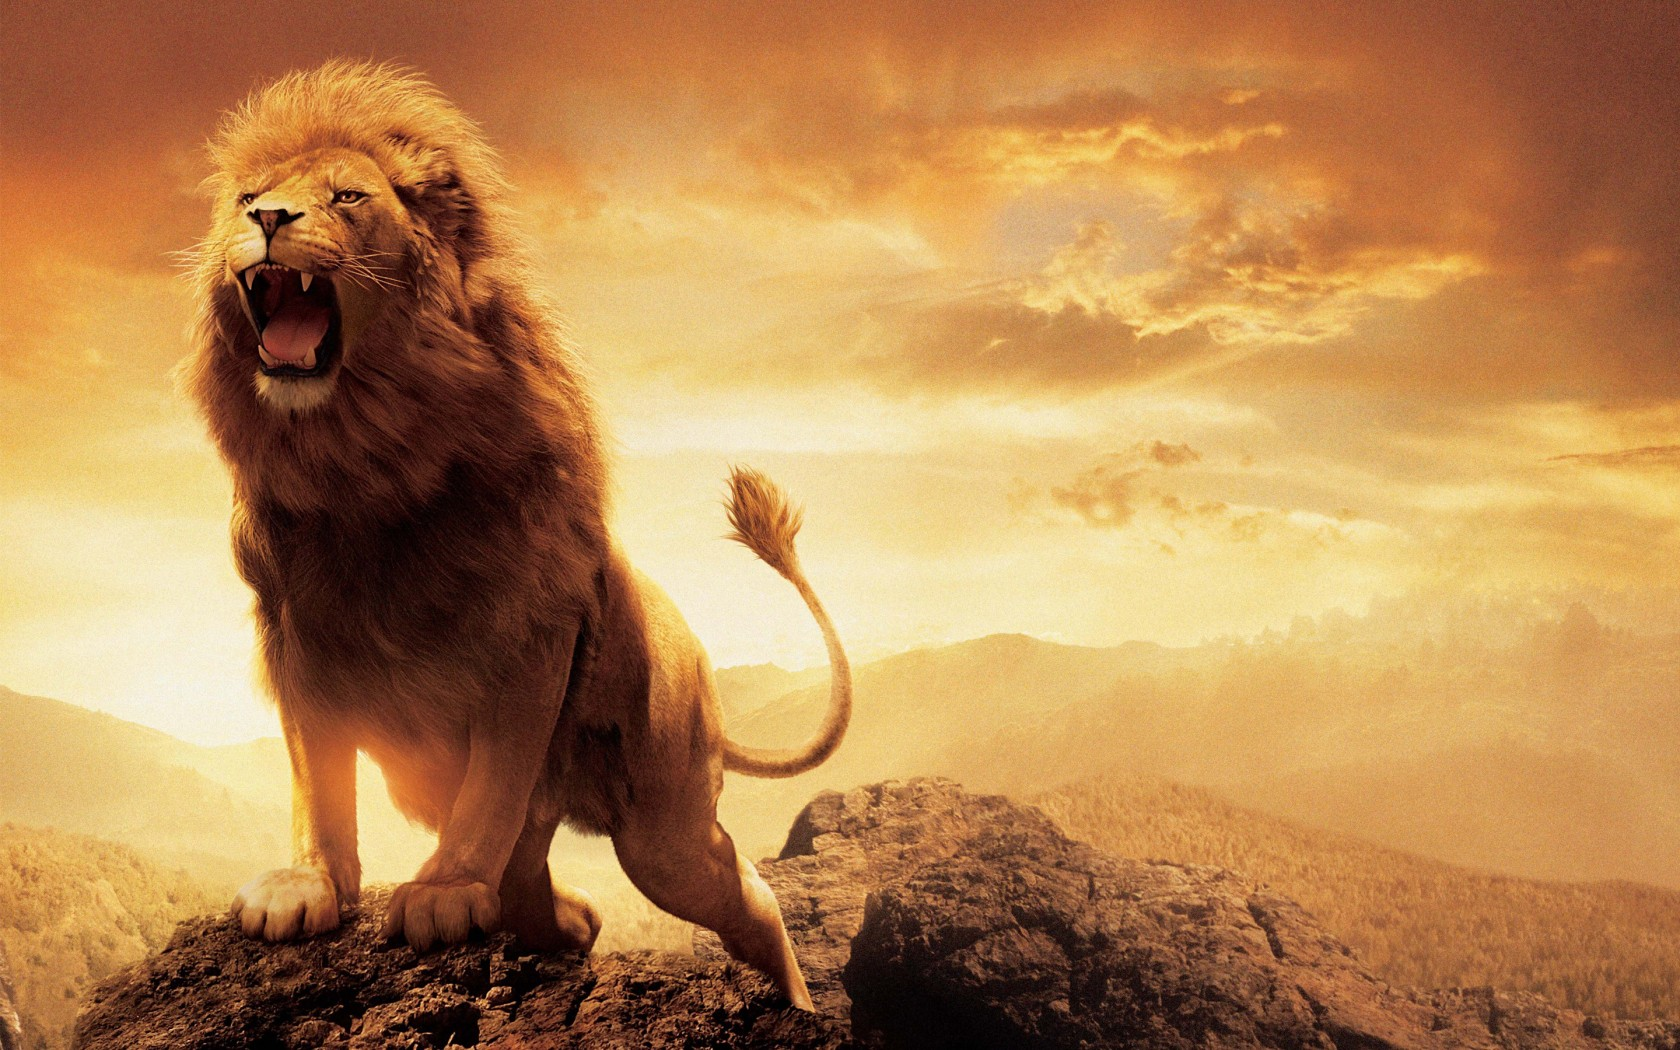 Cute Hd Wallpapers For Iphone 5 Narnia Lion Aslan Wallpapers Hd Wallpapers Id 15038